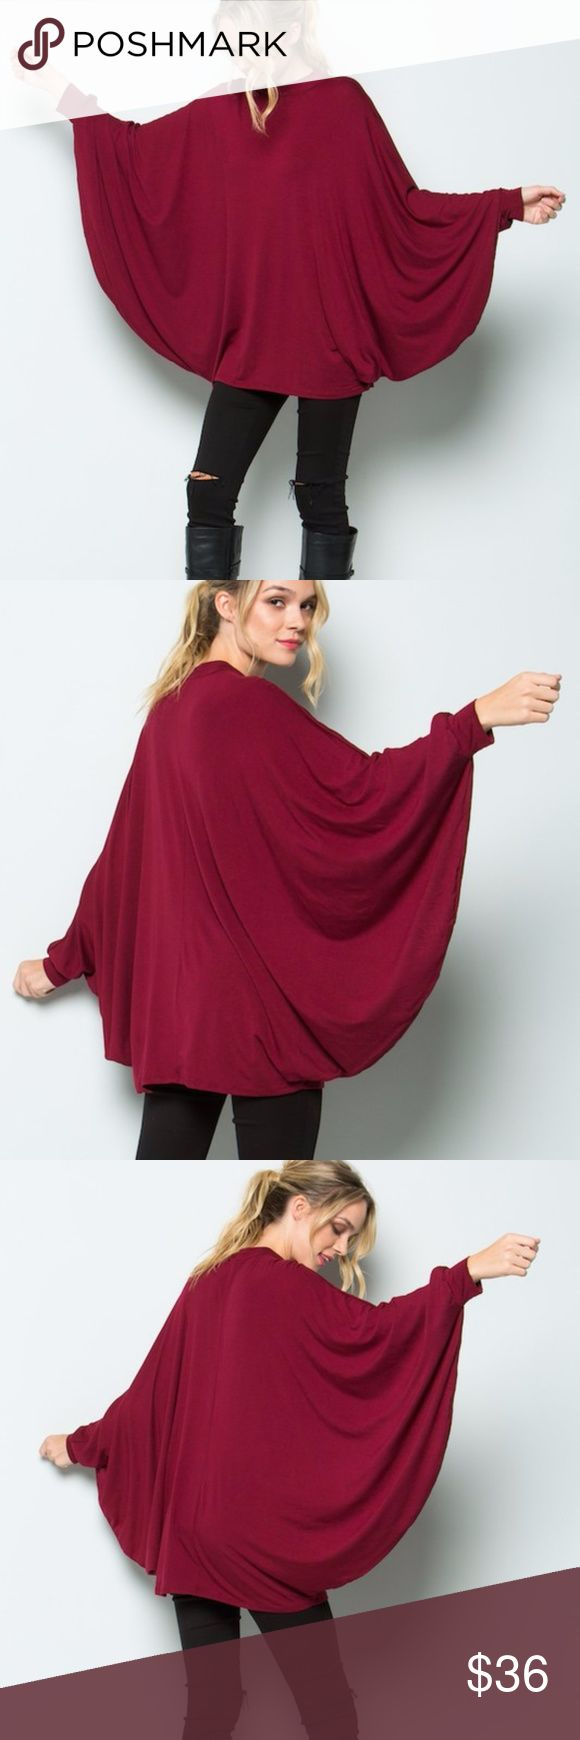 Burgundy Wide Kimono Batwing Slv Jersey Tunic Top Comfy and trendy loose fit jersey tunic shirt with long wide batwing sleeves. Made of soft stretchy fabric. 95% Rayon 5% Spandex. Made in USA. Brand New factory direct.  Size XS 0/2: Bust 31-32 Waist 23-24 Hips 33-34 Size S 2/4: Bust 33-34 Waist 25-26 Hips 35-36 Size M 6/8: Bust 35-36 Waist 27-28 Hips 37-38 Size L 10/12: Bust 37-38 Waist 29-30 Hips 39-40 Size XL 12/ 14: Bust 39-40 Waist 31-32 Hips 41-42 Tops Tunics